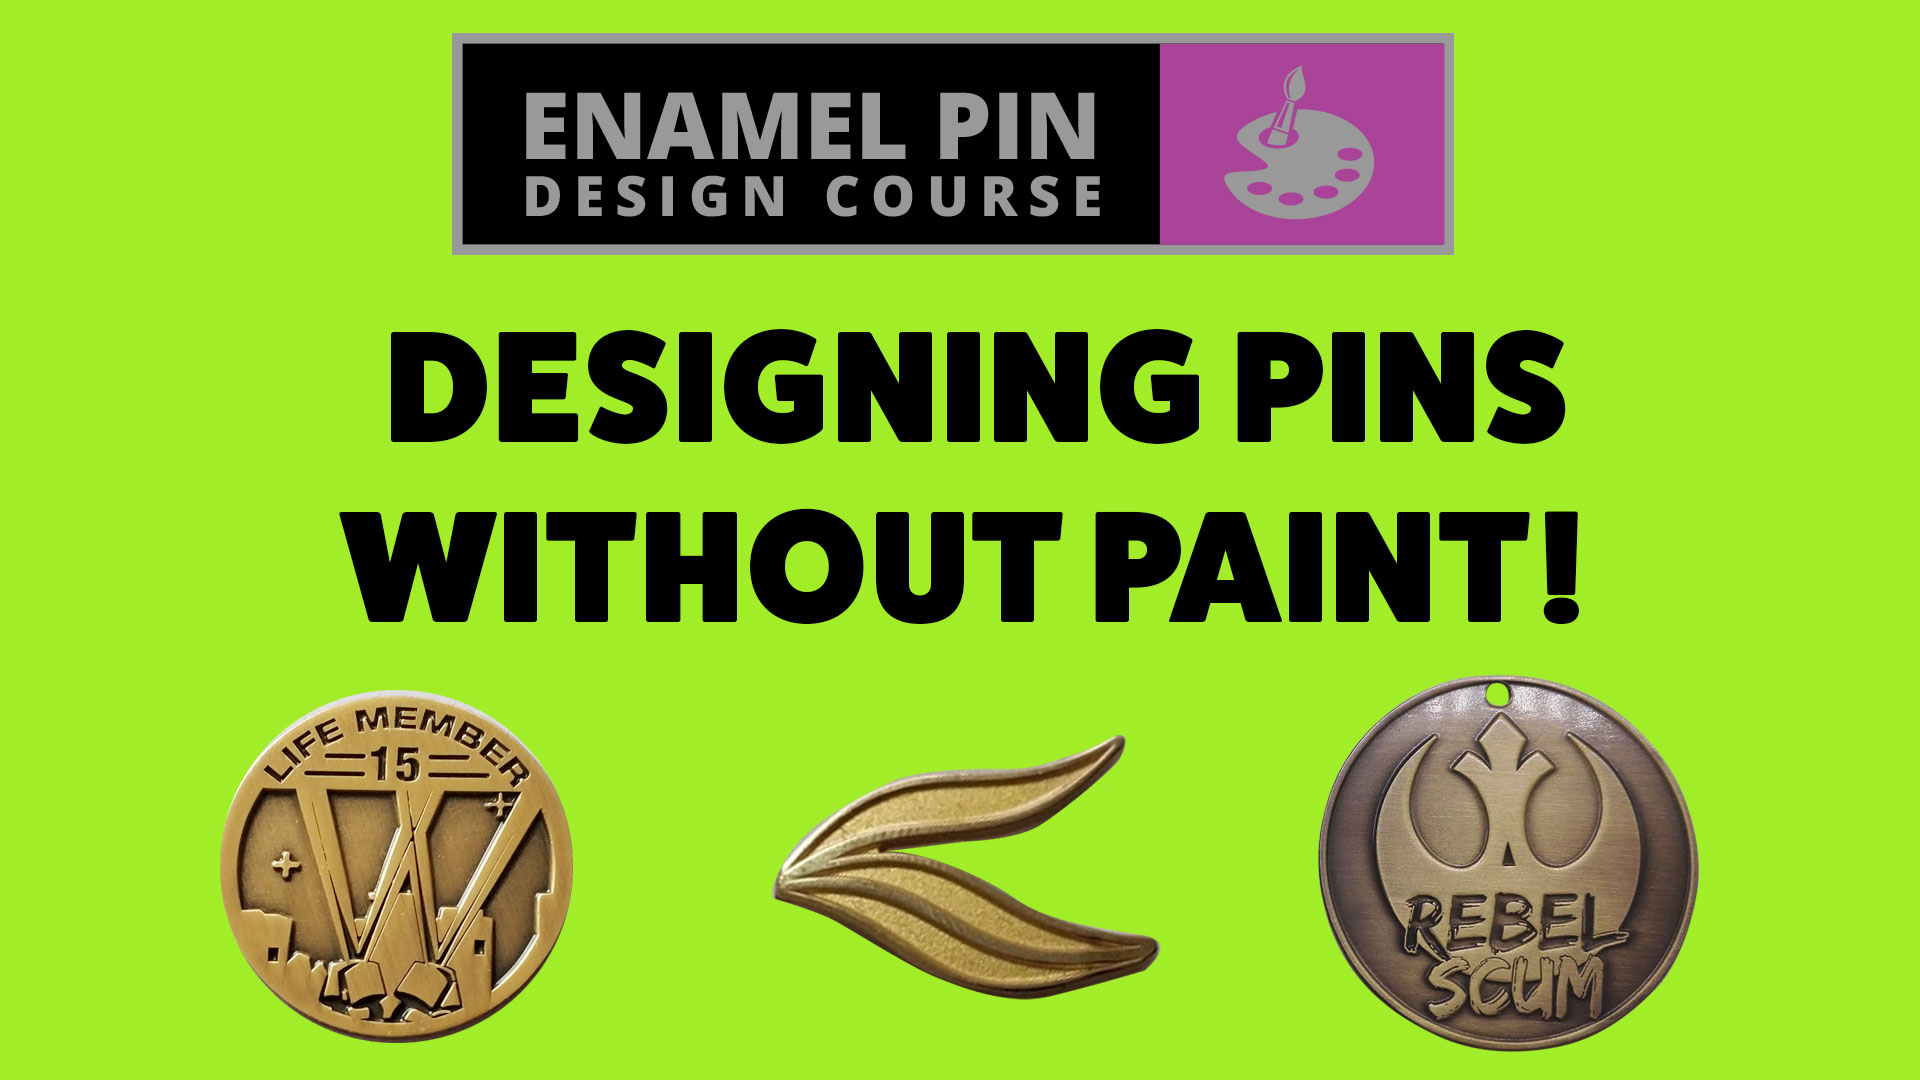 Enamelpin-design-course-metal-finish